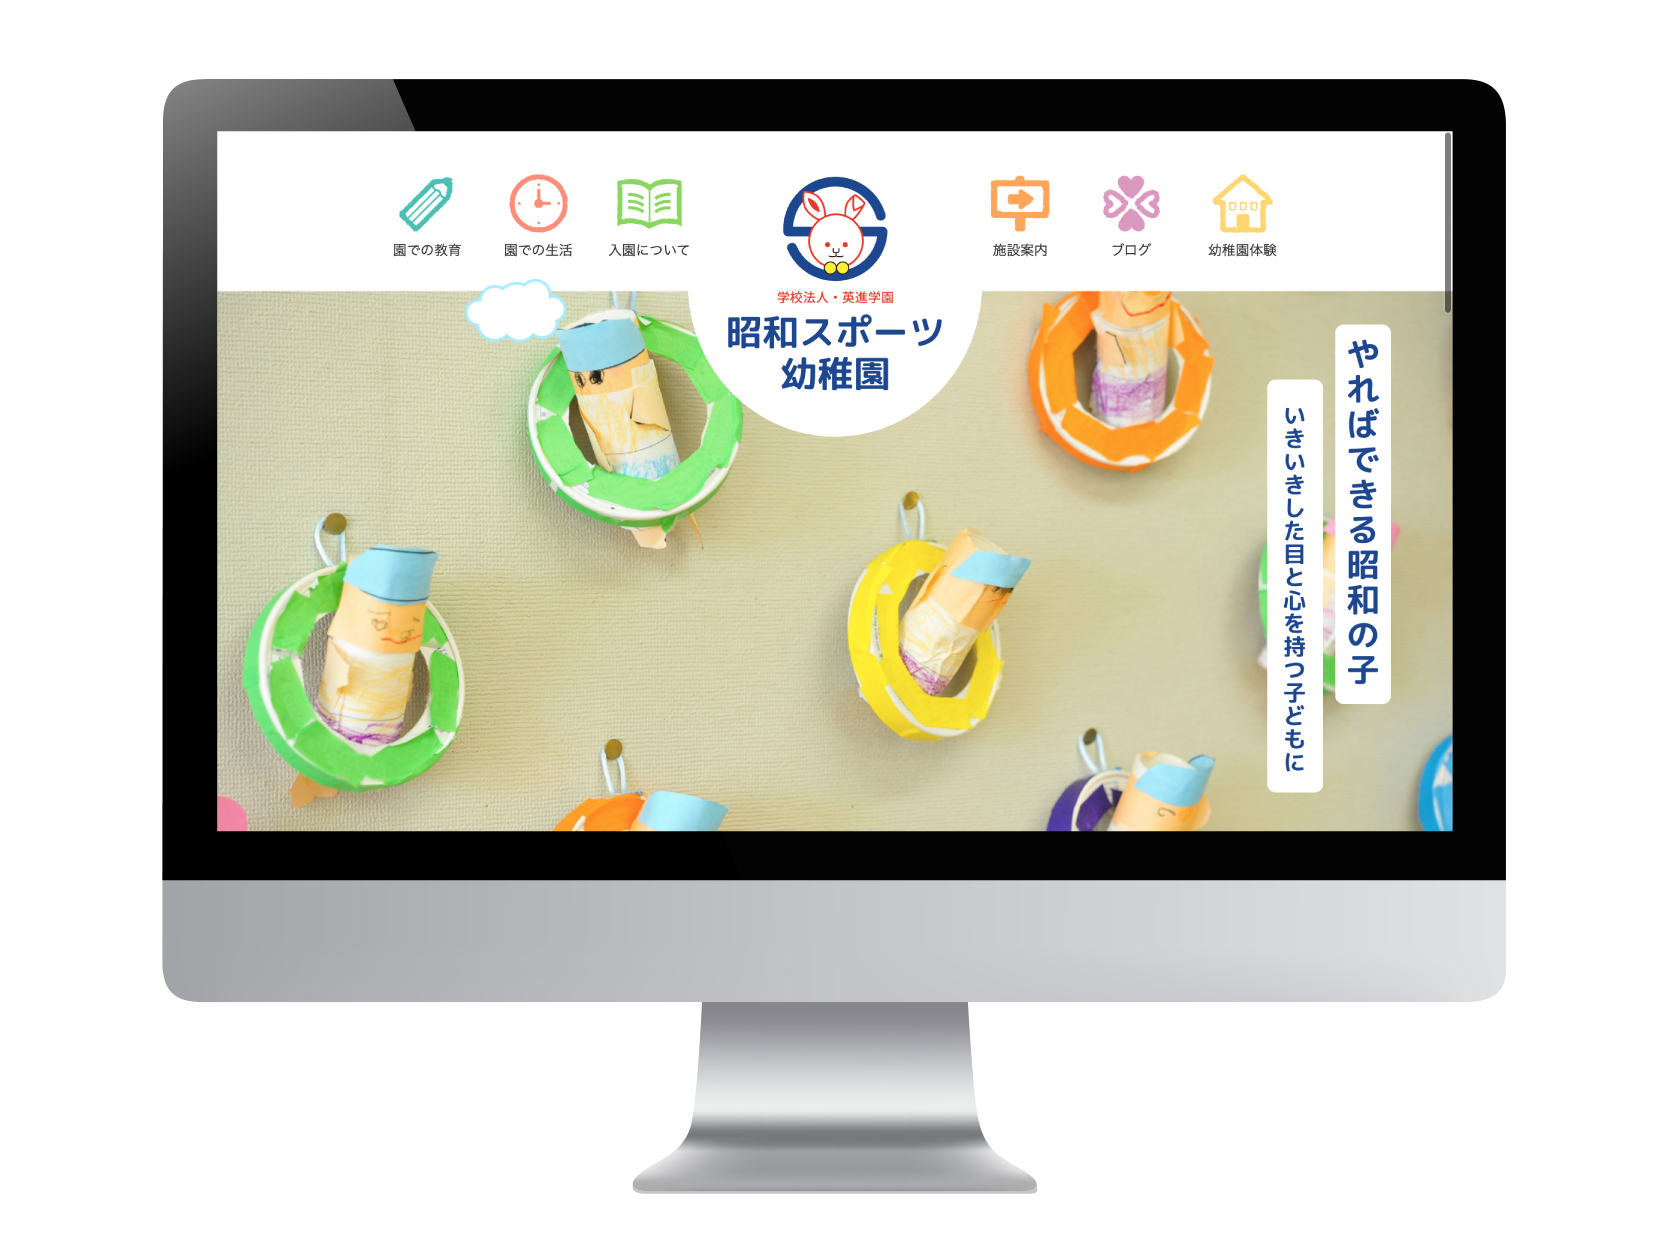 <span>Official web site</span><br>昭和スポーツ幼稚園